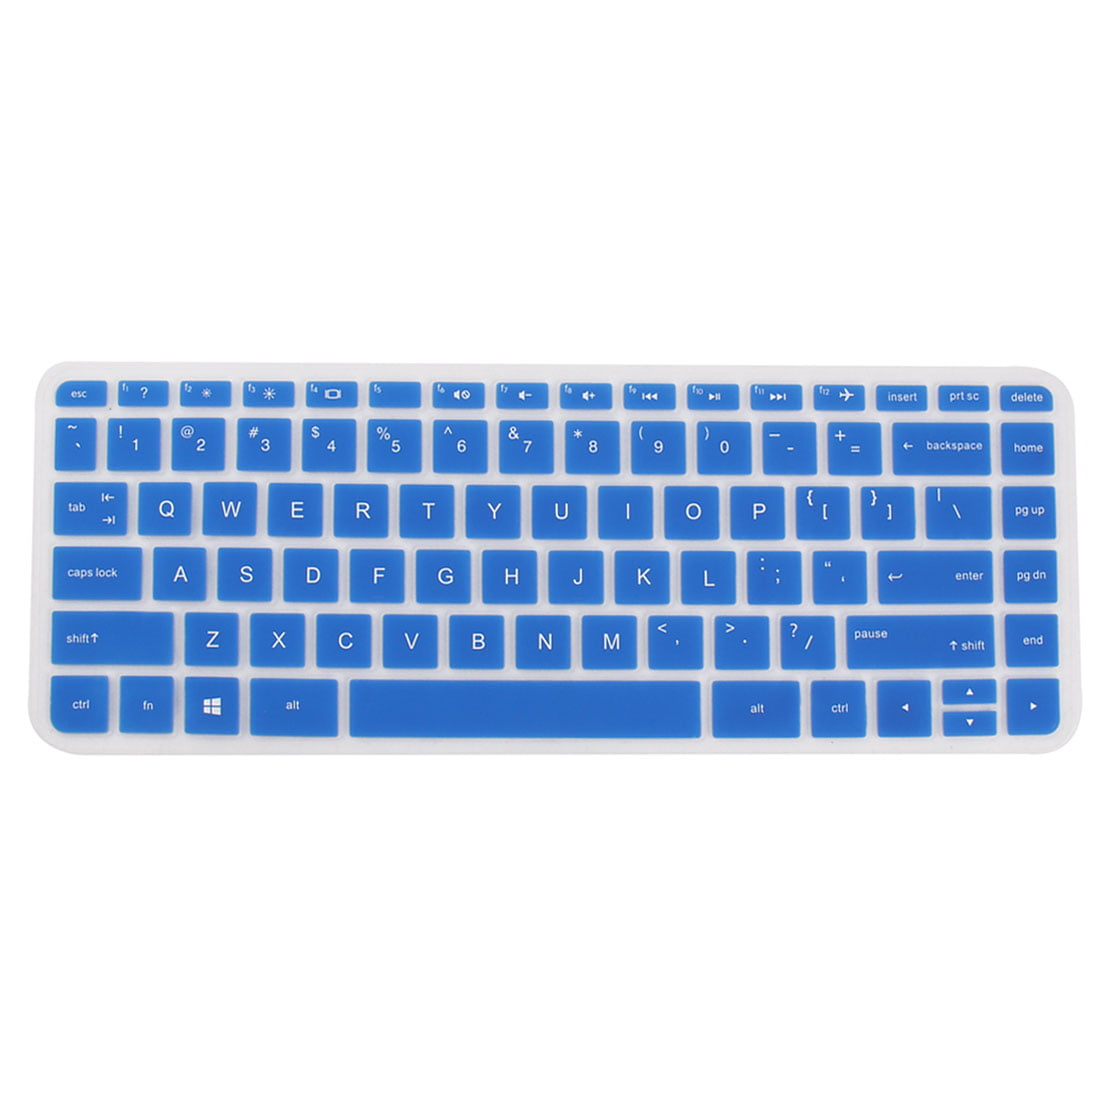 Laptop Keyboard Clear Silicone Cover Anti-Dust Protector Skin For 11 12 US